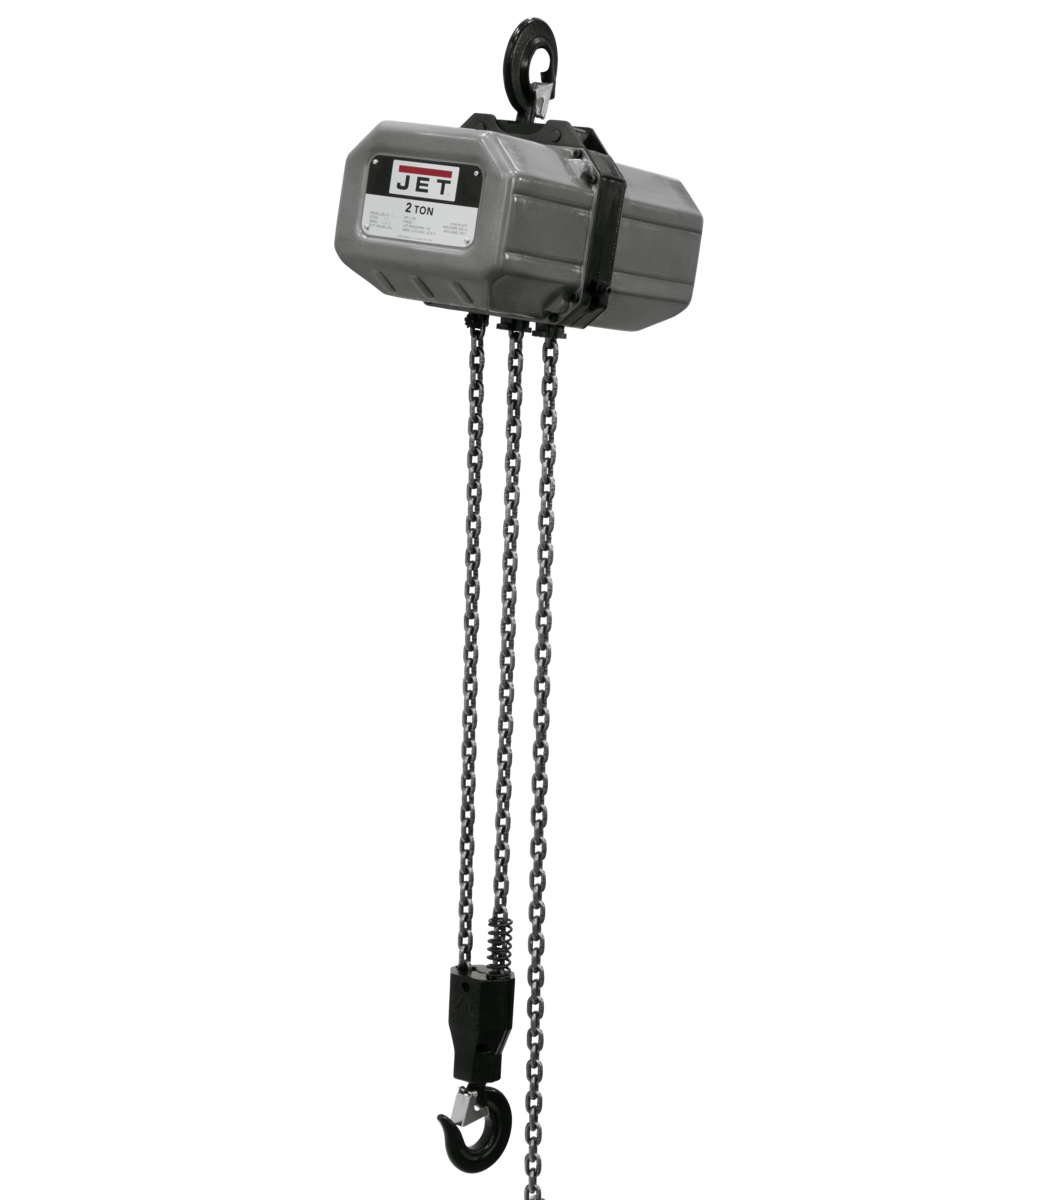 2SS-3C-20, 2-Ton Electric Chain Hoist 3-Phase 20' Lift